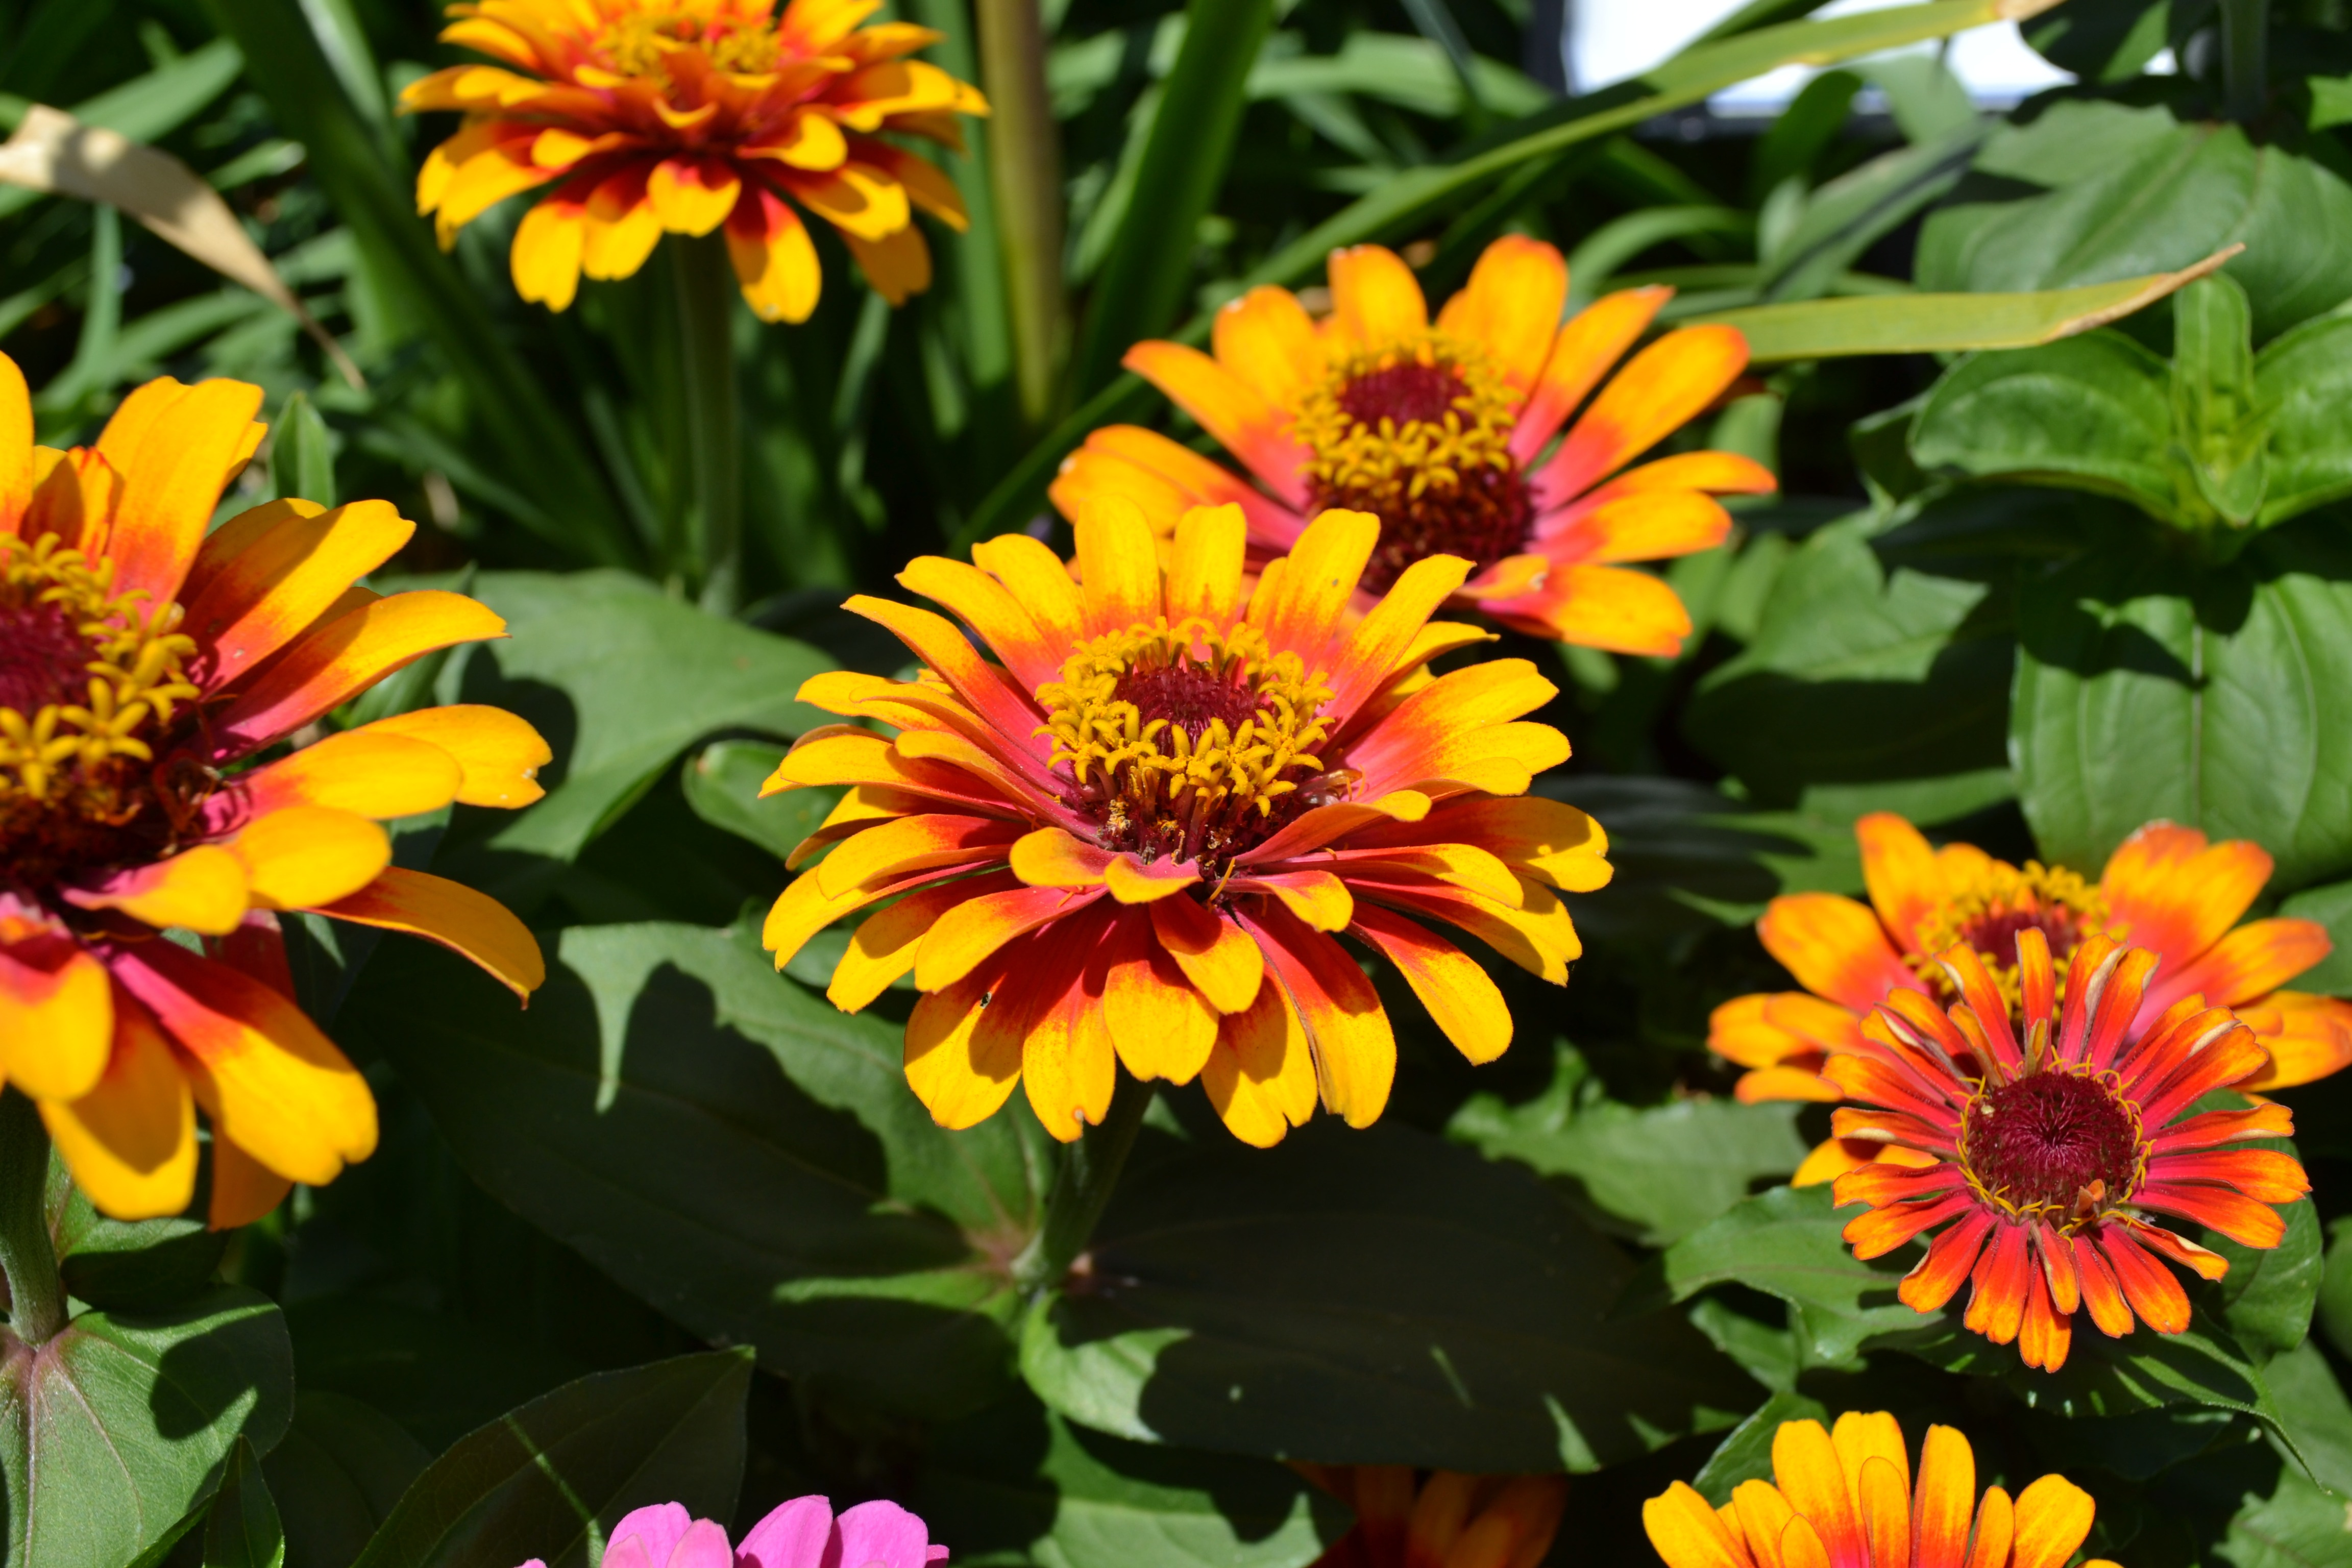 Sow fast growing annuals like zinnias and marigolds now for a final show of color.